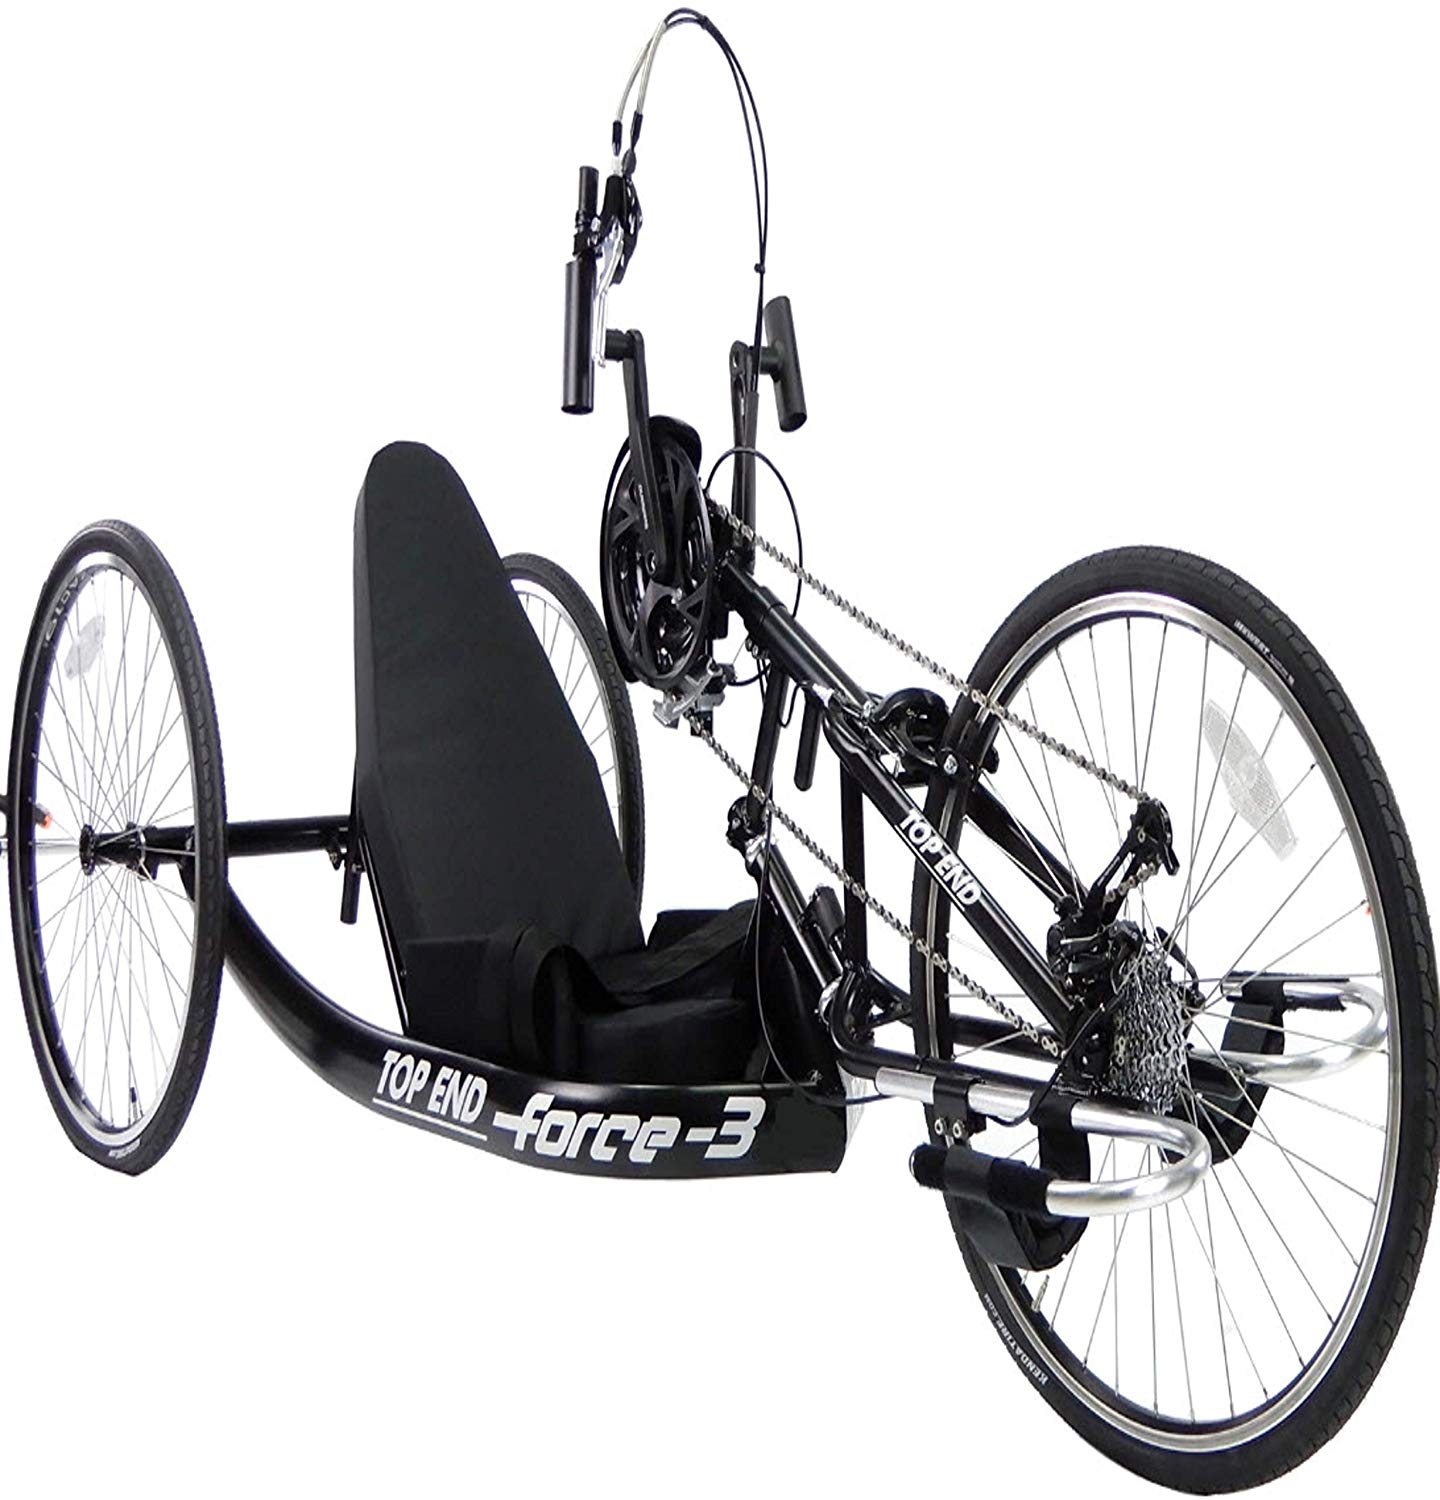 Invacare Top End 1181147 Force3 17 inche Seat width Black Stock Handcycle